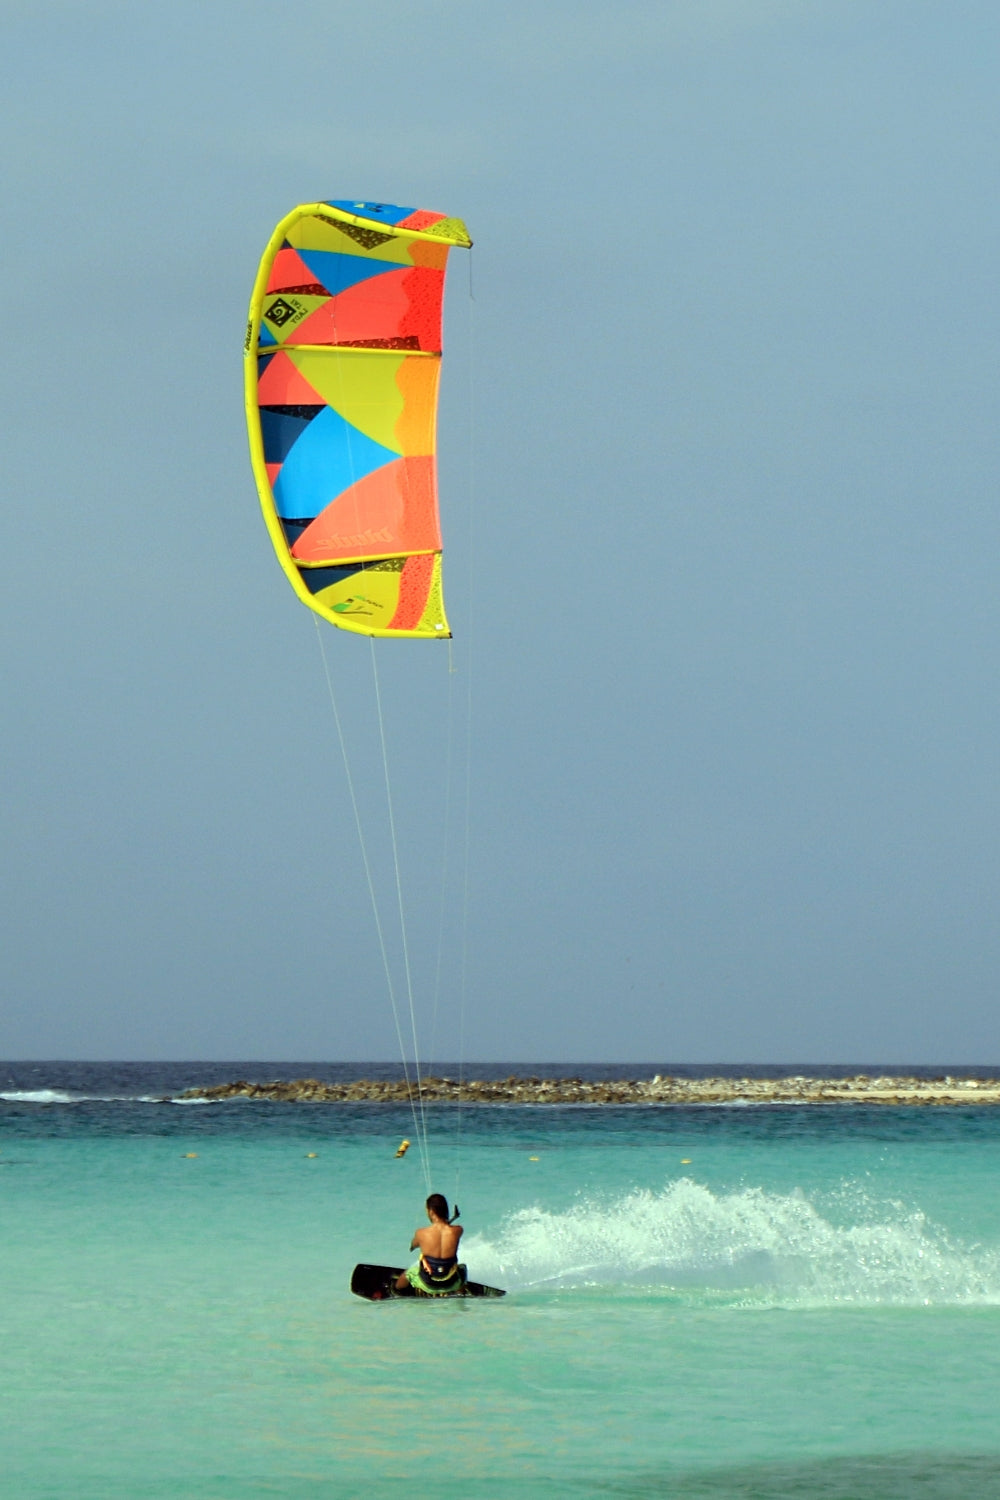 Kitesurfing light wind cruising kite